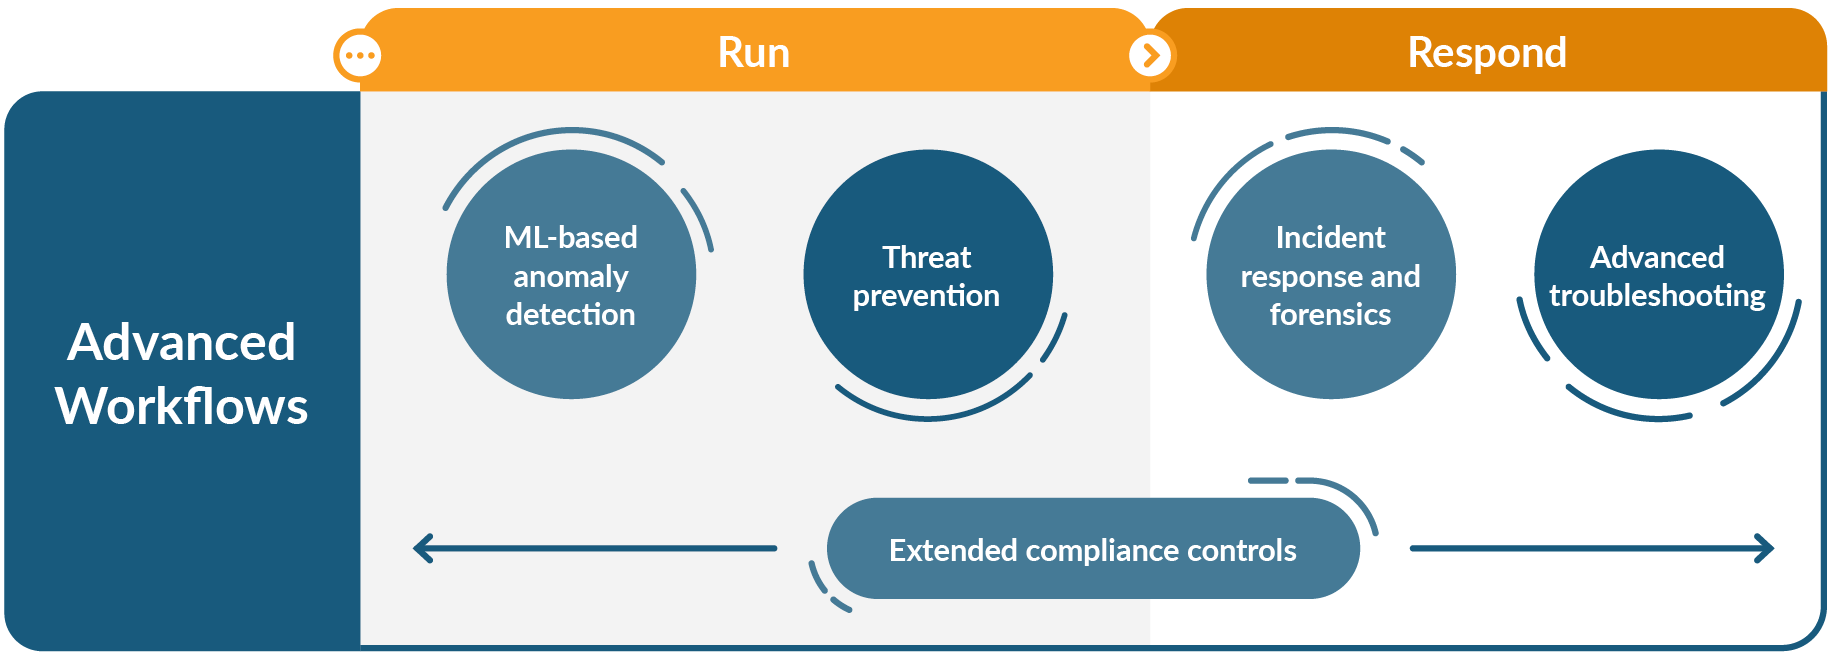 The five advanced workflows for secure DevOps are: During the run stage, machine learning based anomaly detection, and threat prevention; during the respond phase, incident response and forensics, and advanced troubleshooting; and during the full lifecycle, extended compliance controls.